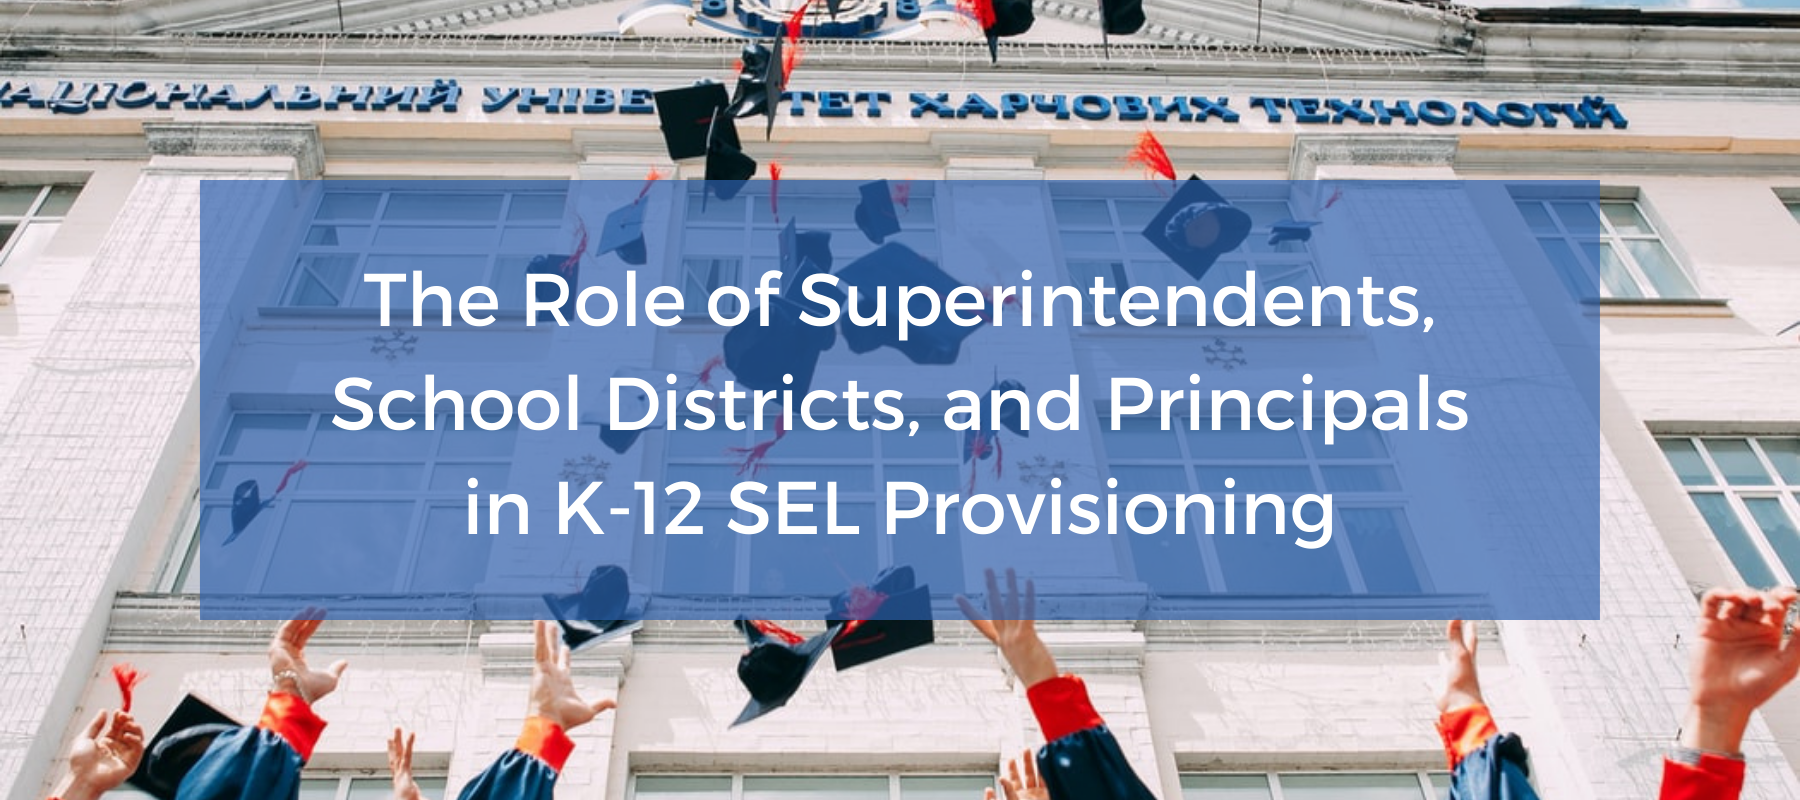 the role of superintendents, school districts, and principals in K-12 SEL provisioning.